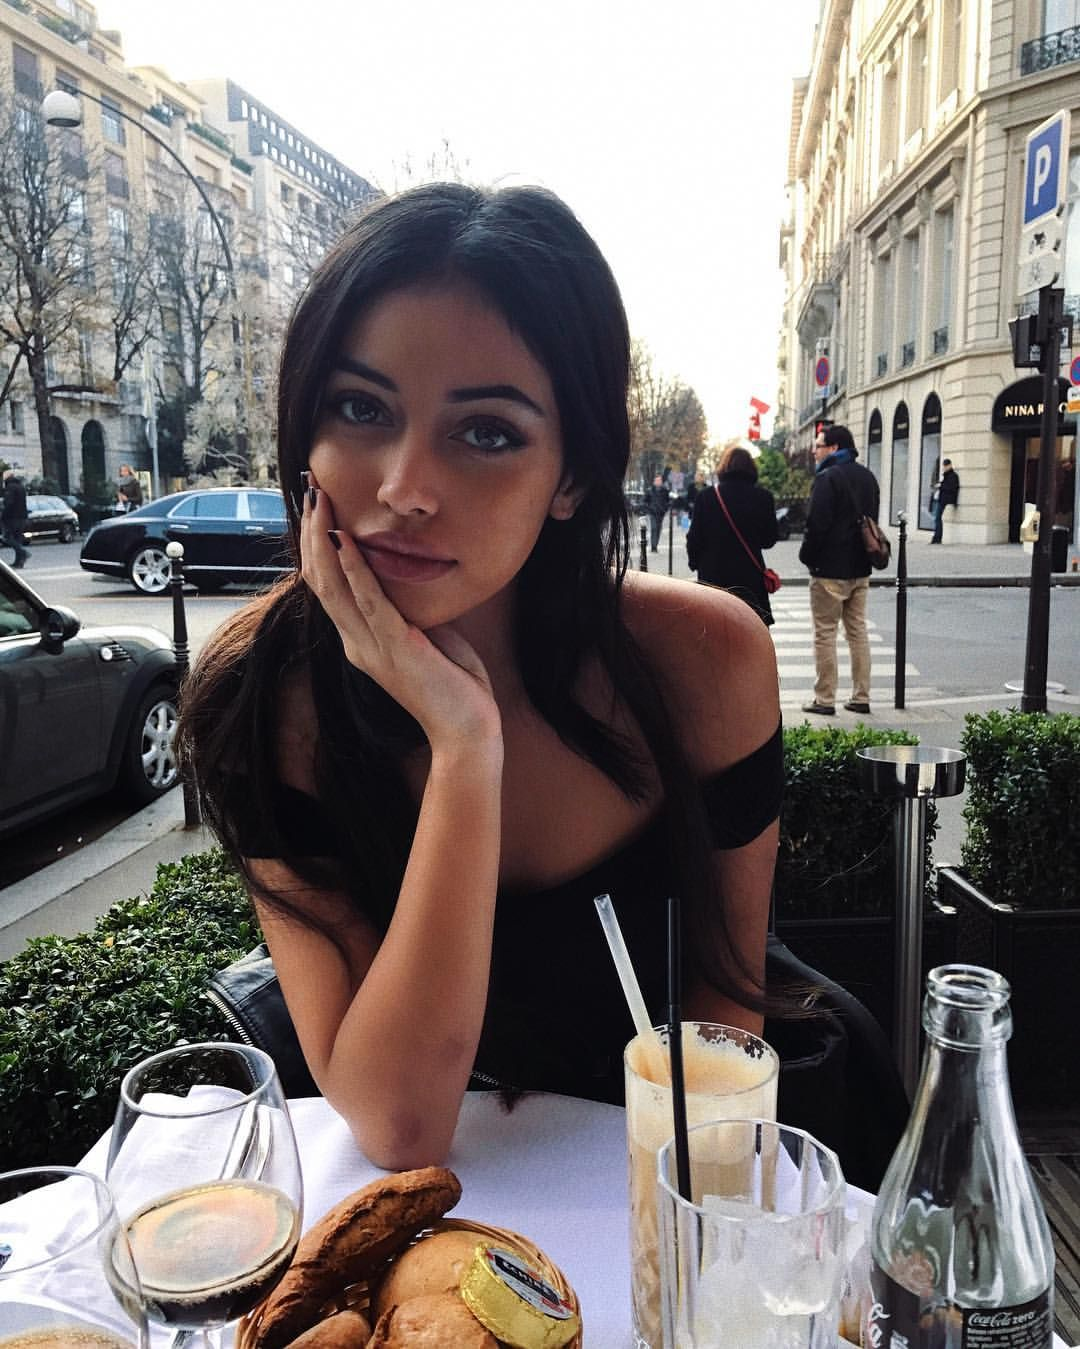 Pin by lilly on snapshot | Instagram pose, Cindy kimberly